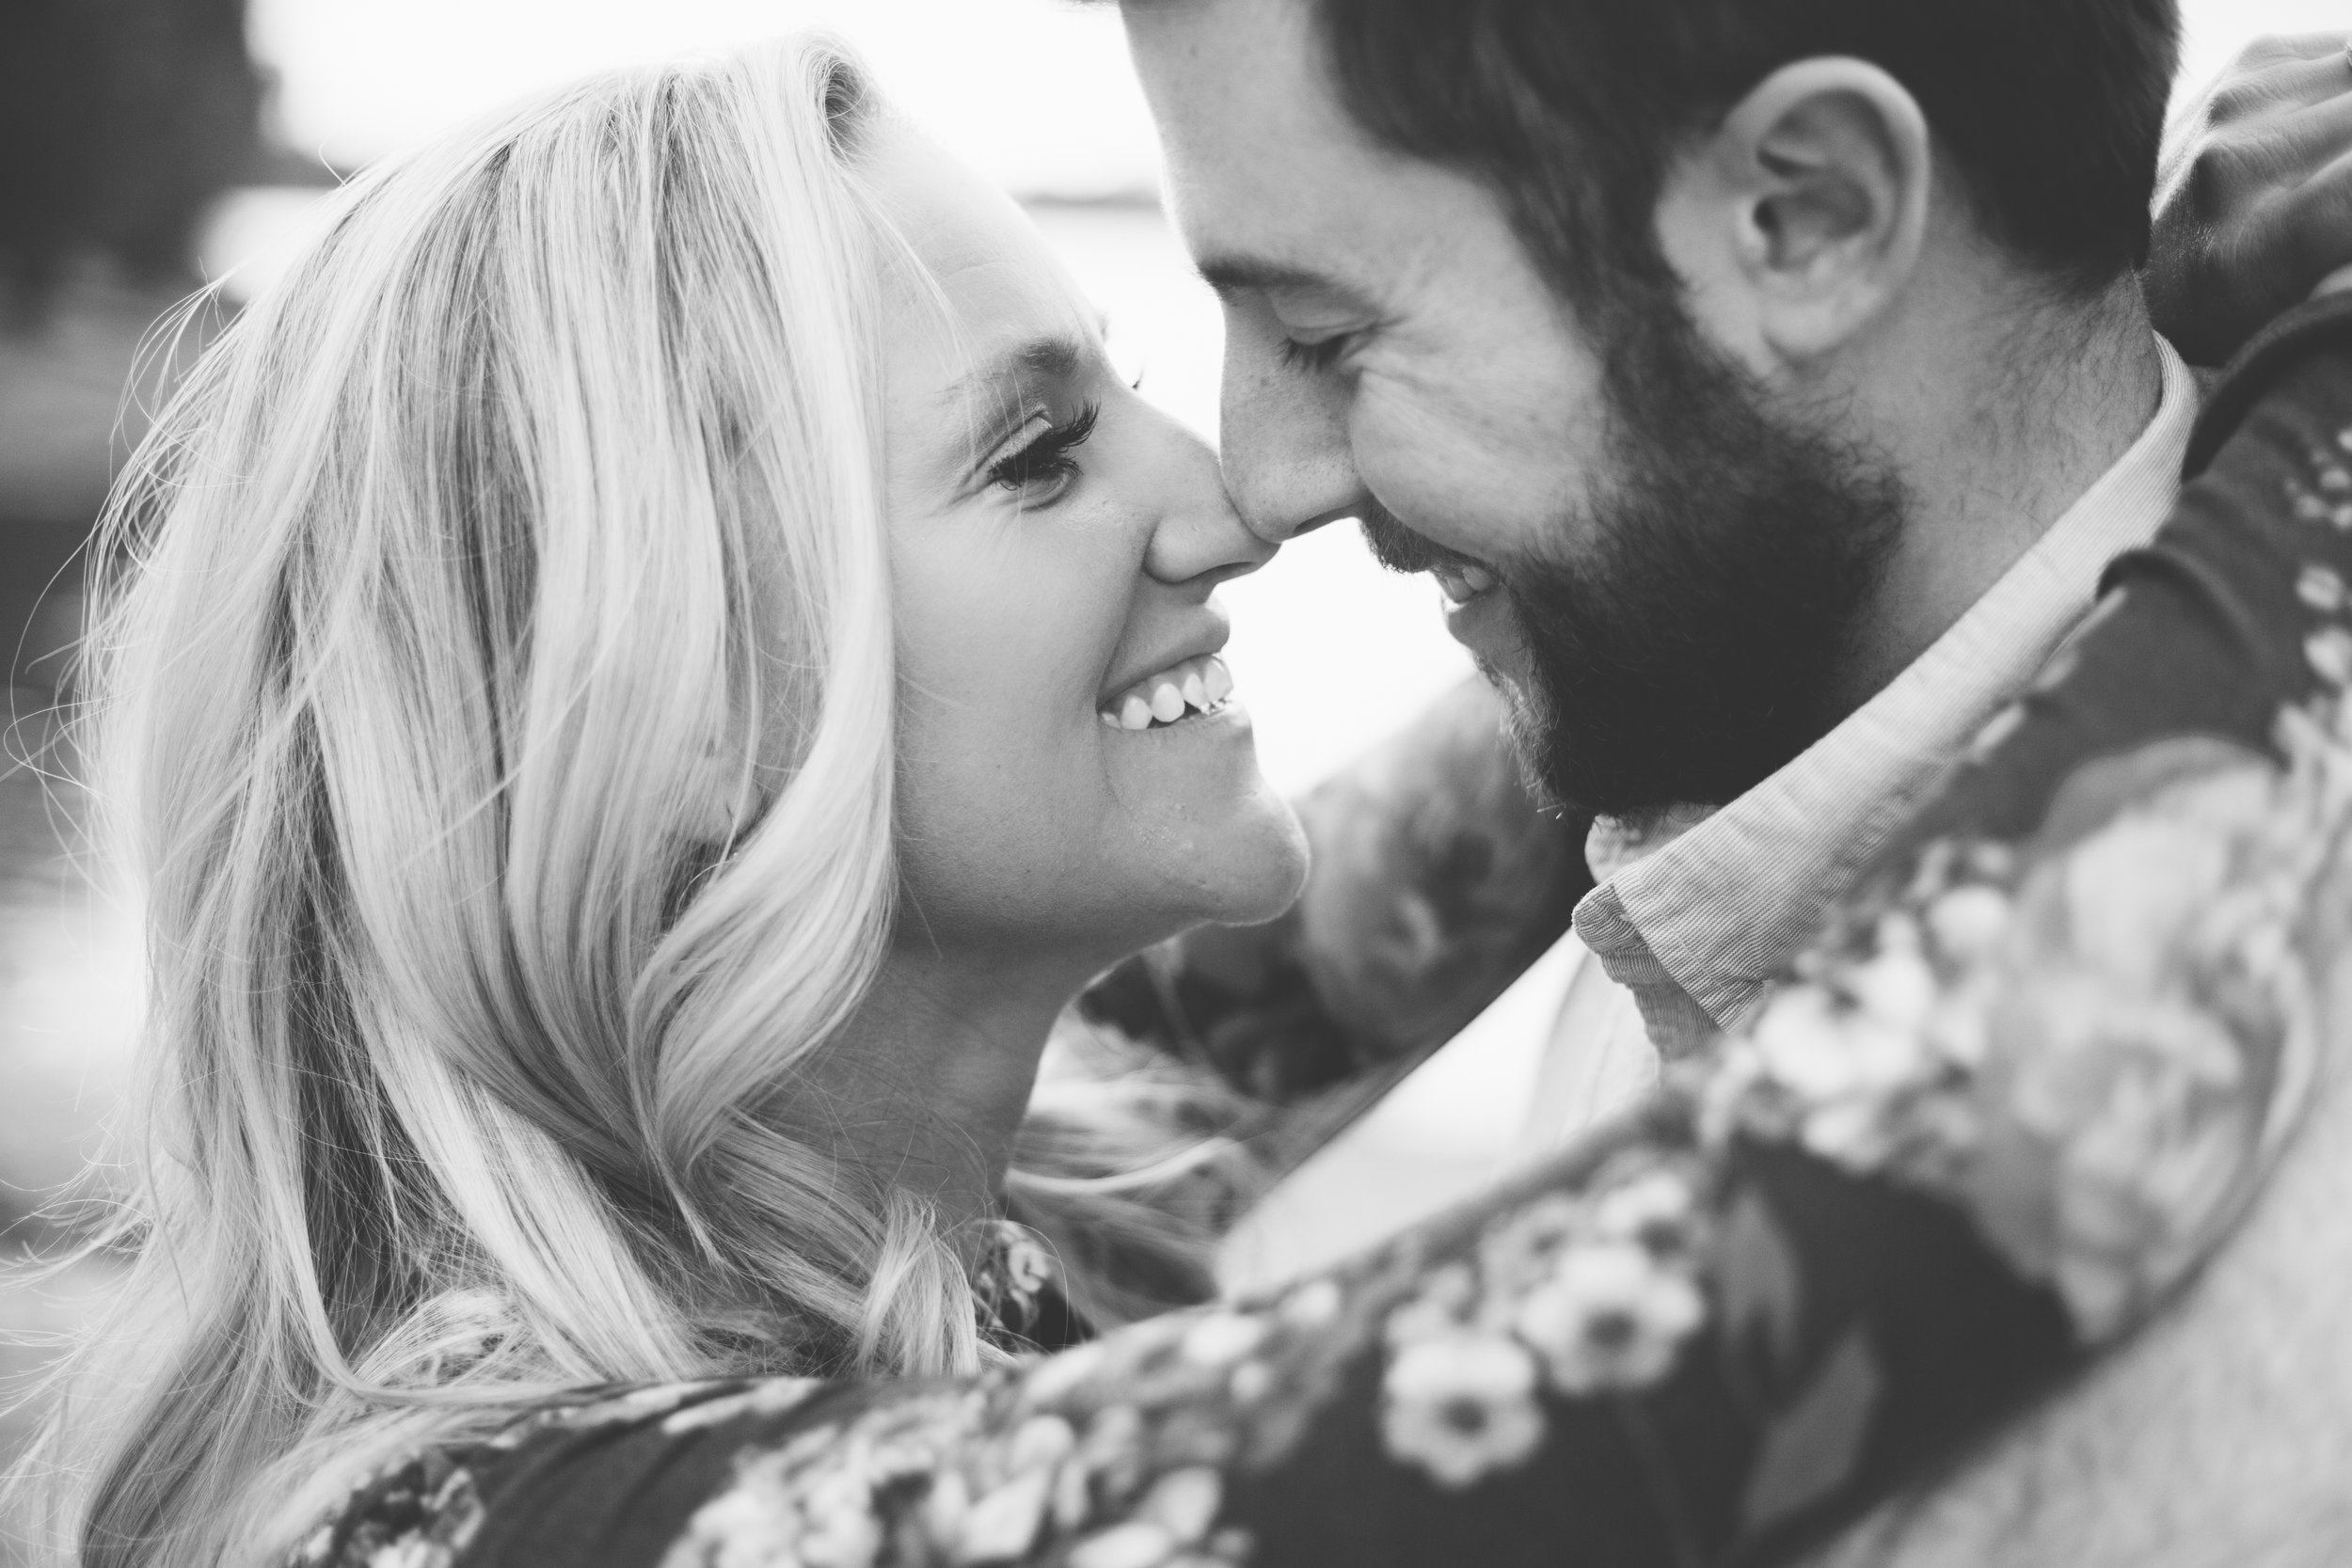 poses, outdoor, intimate, ideas, outfits, country, fall, unique, passion, fun, young, married, engaged, creative, romantic, natural, light and airy, natural light, photoshoot, couple, inspiration, sunset, love, Knoxville, vibrant, colorful, anniversary, hunter valley farm, black and white